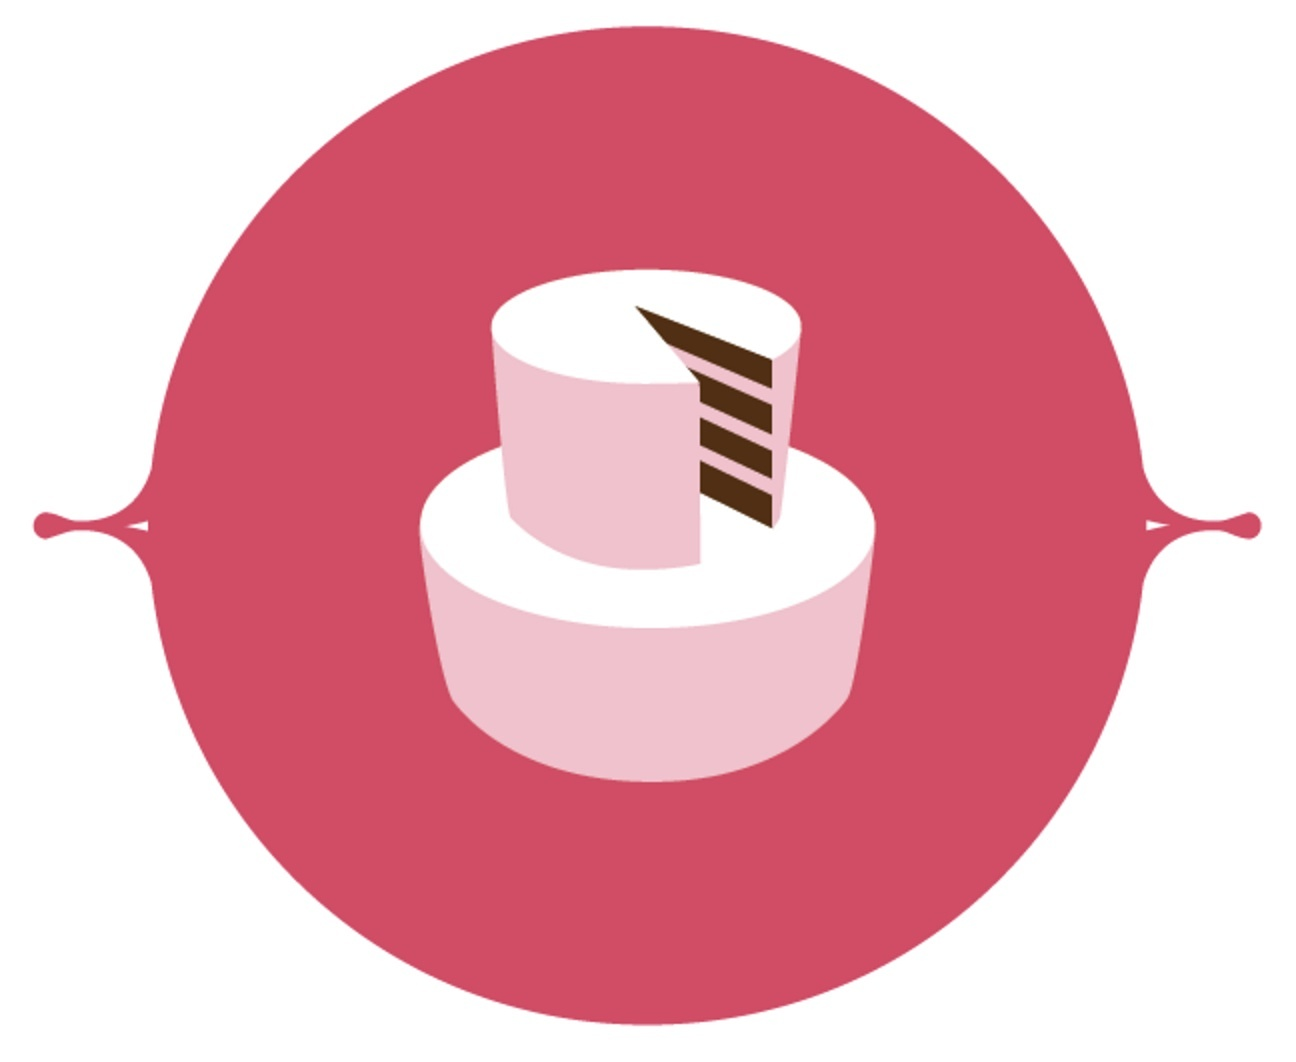 Quickie: Cake Icon